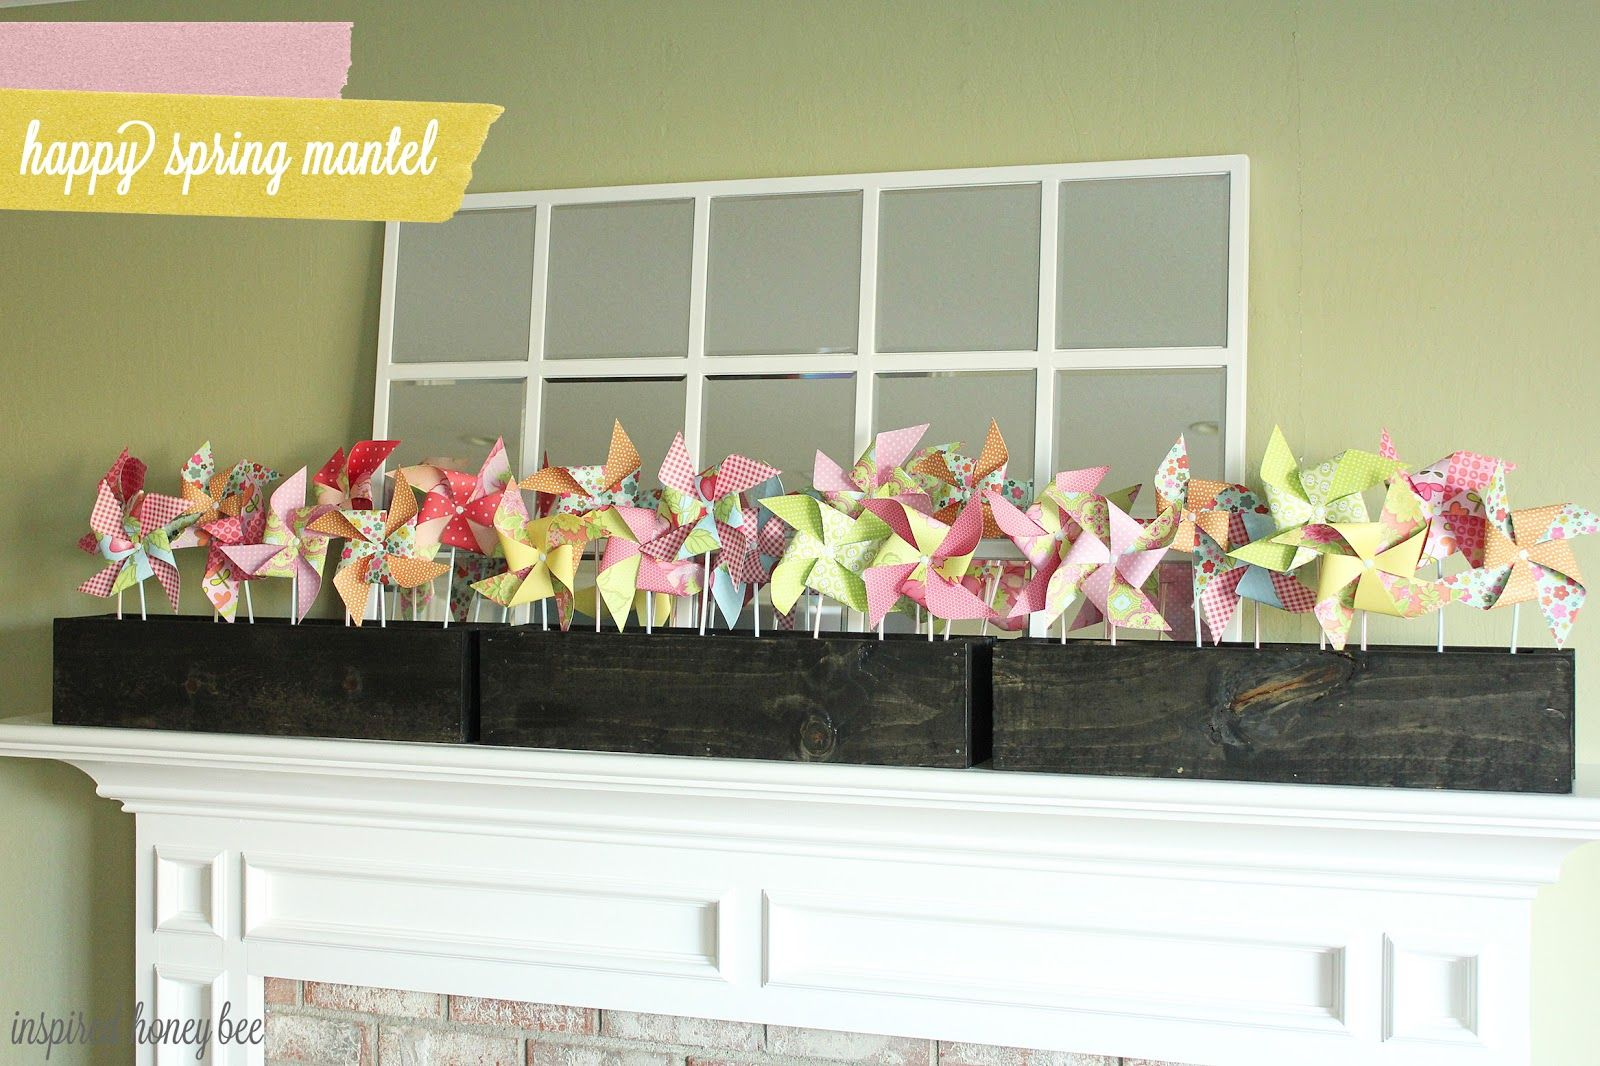 Inspired Honey Bee: whimsical spring mantel---I'd like to put the pin wheels in a window box also.